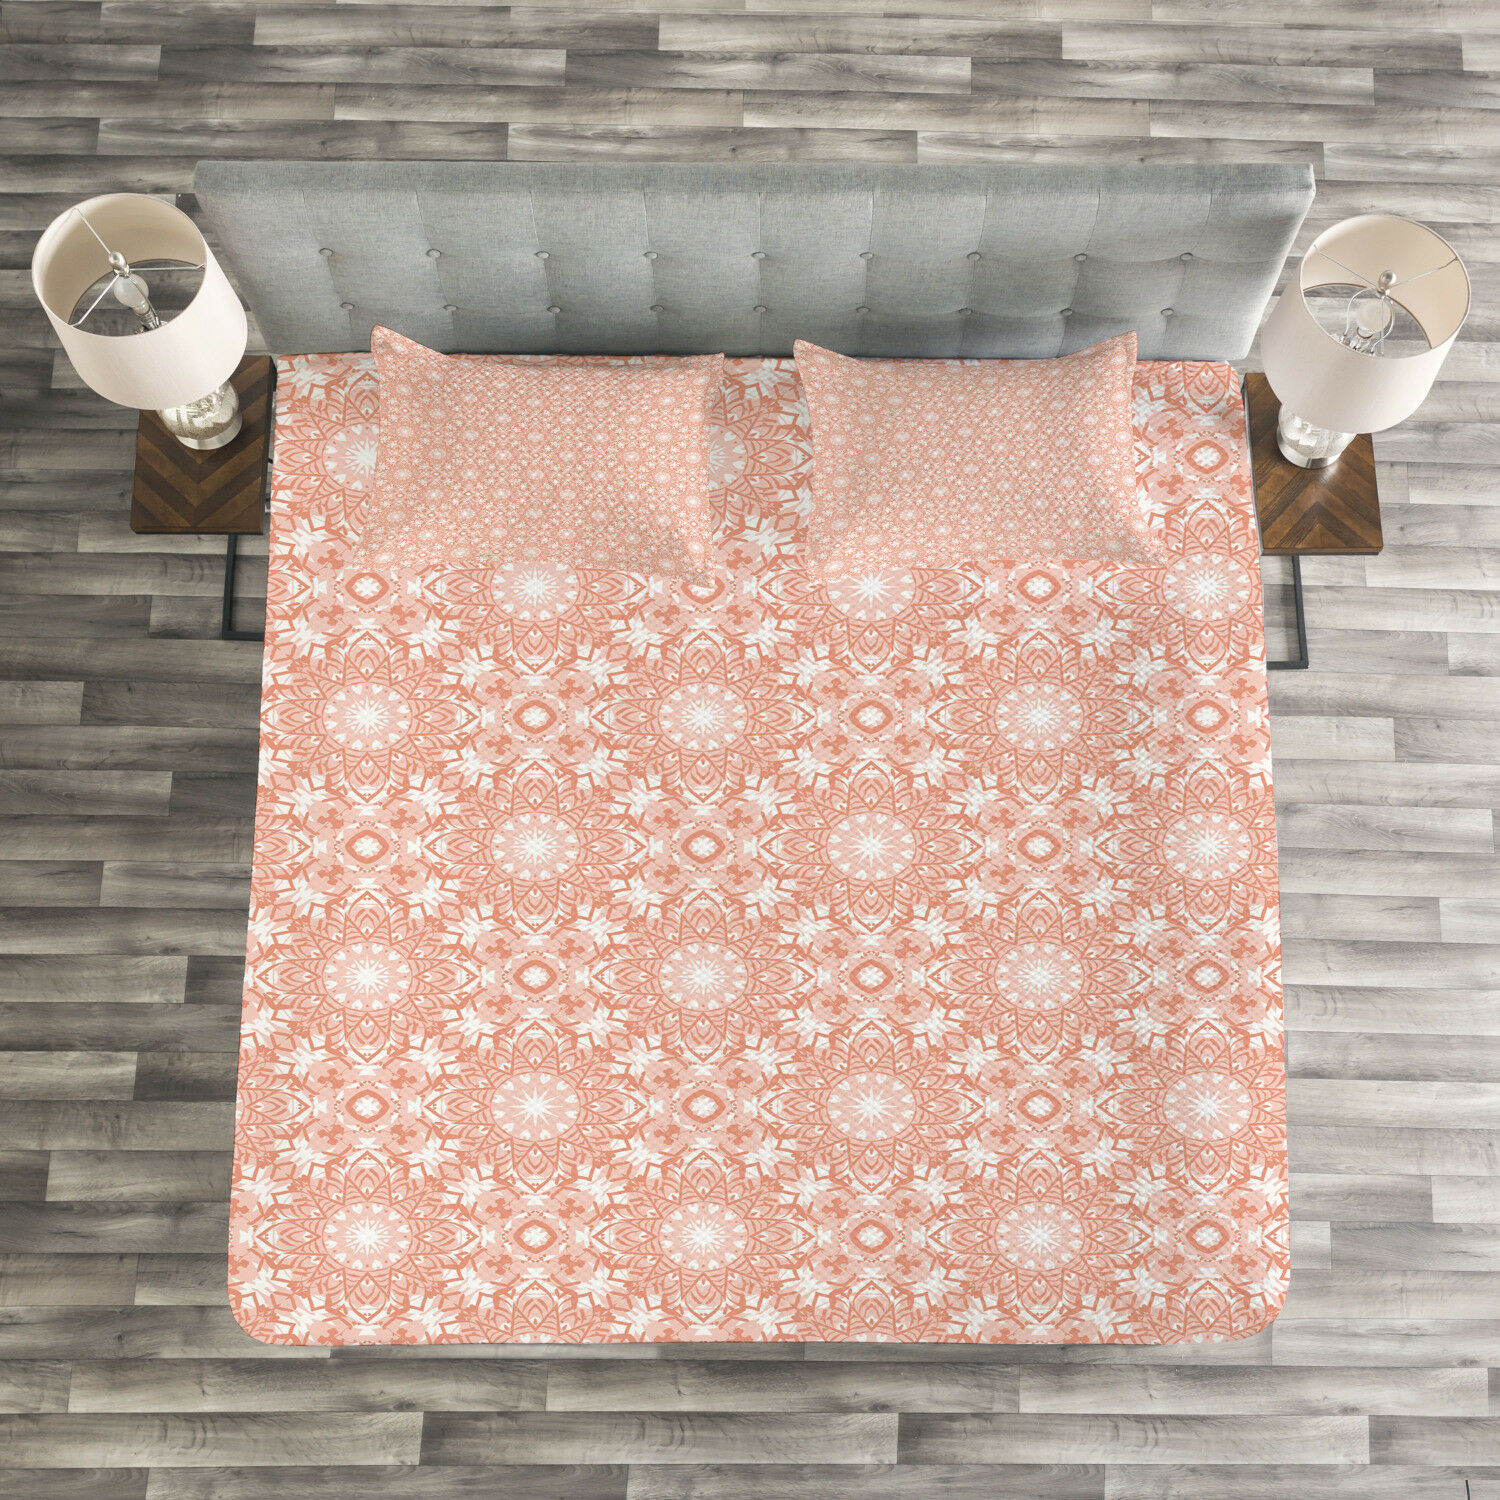 Coral Quilted Bedspread & Pillow Shams Set, Artistic Flourish Pattern Print